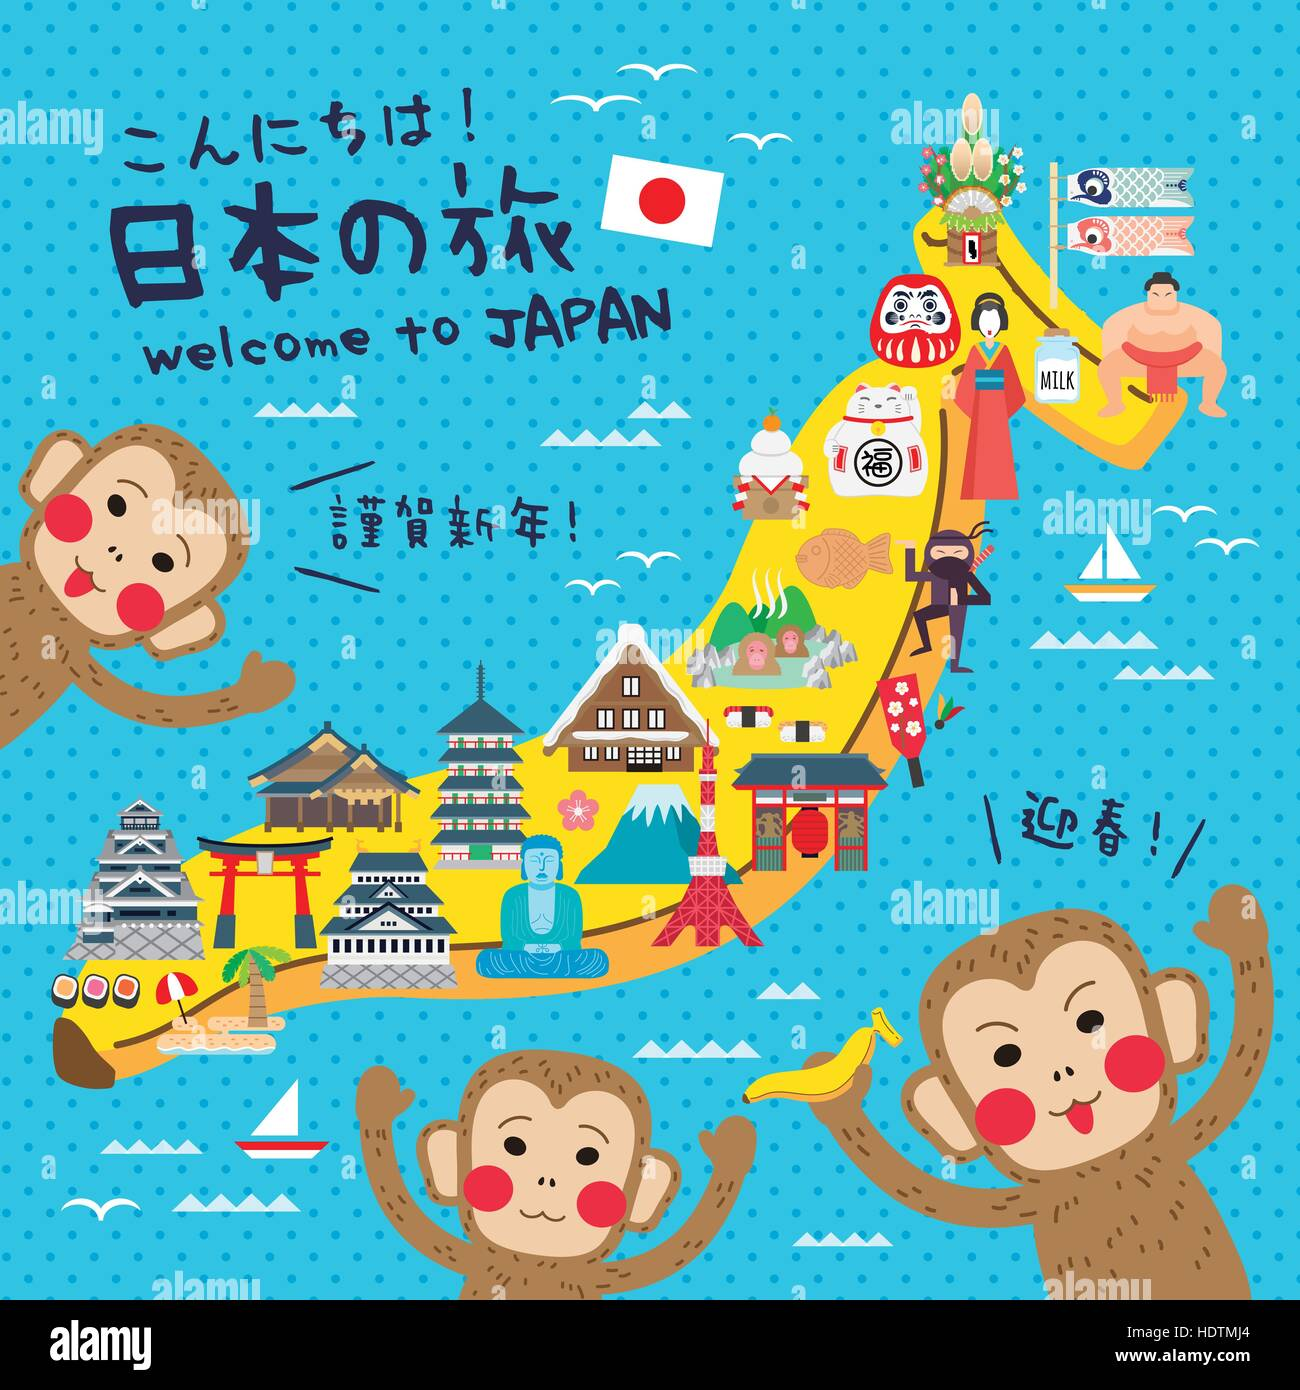 Funny Japan Travel Map Japan Travel And New Year Greetings In - Japan map hd